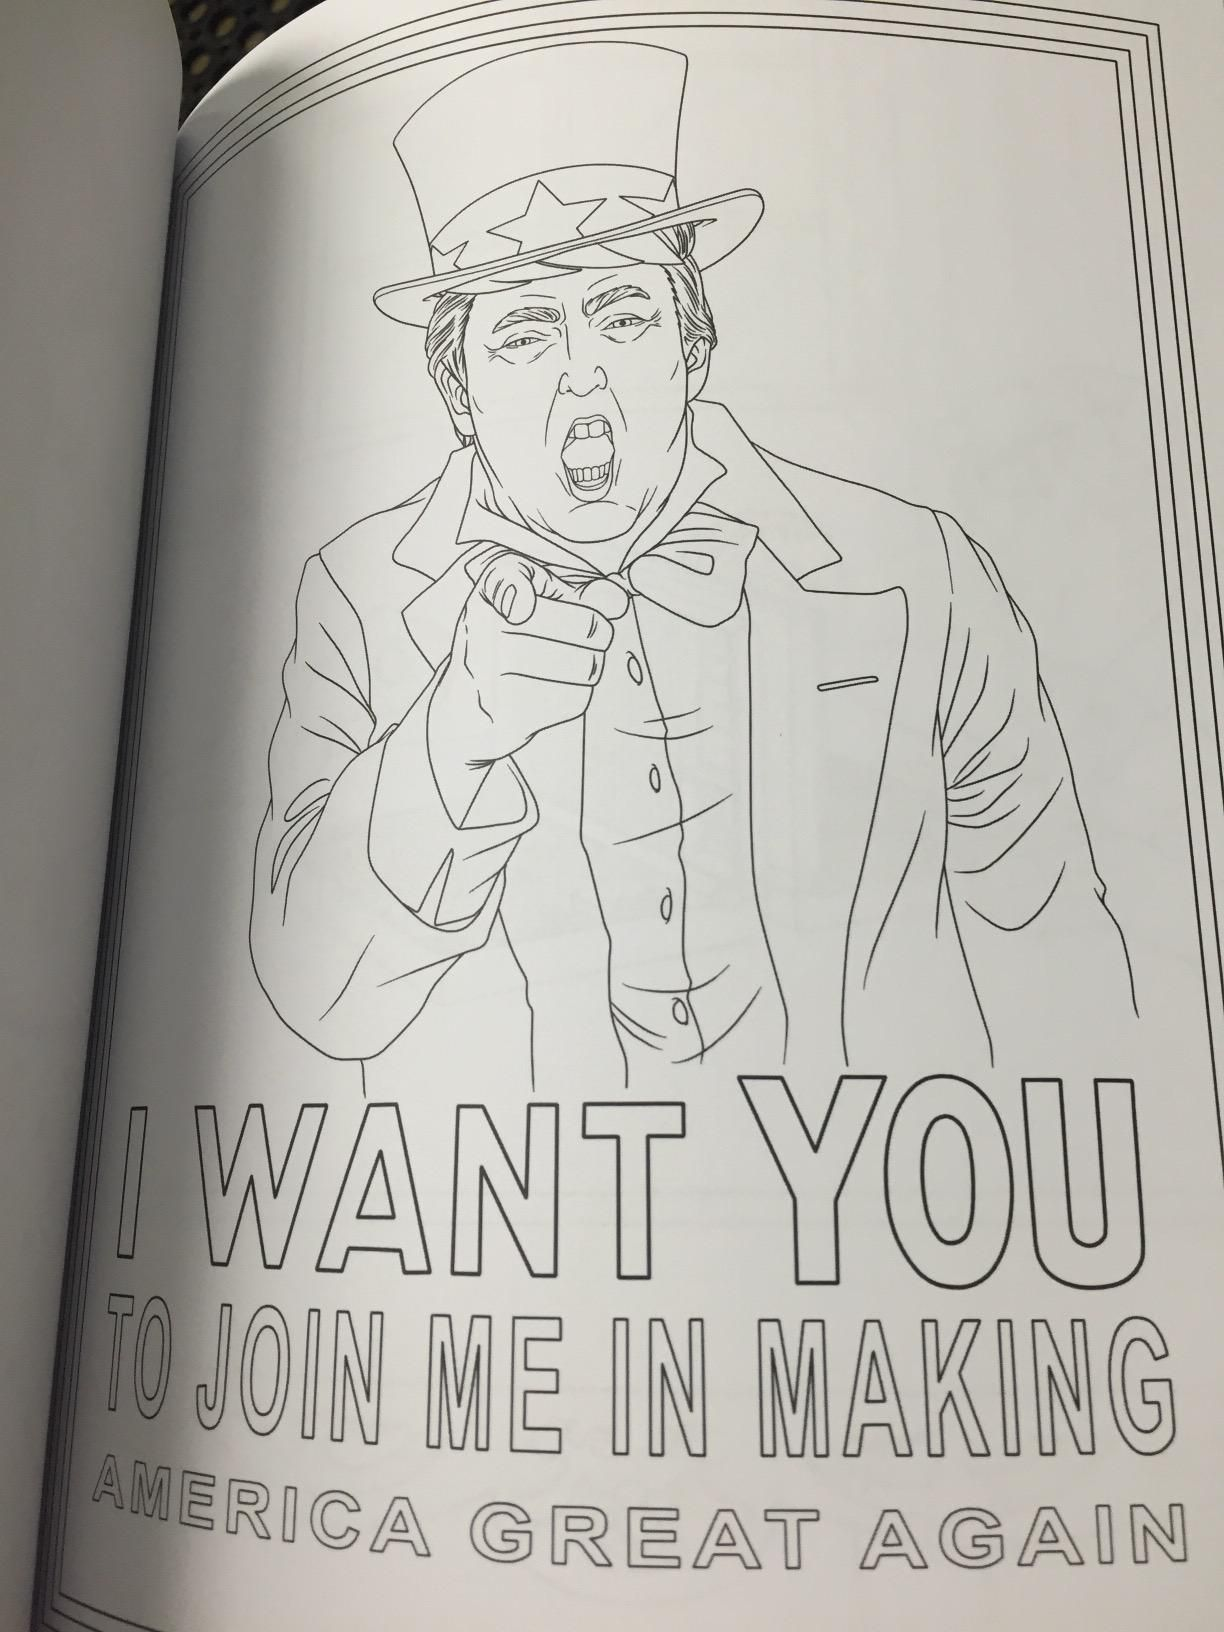 amazon prime now the trump coloring book 9781682610282